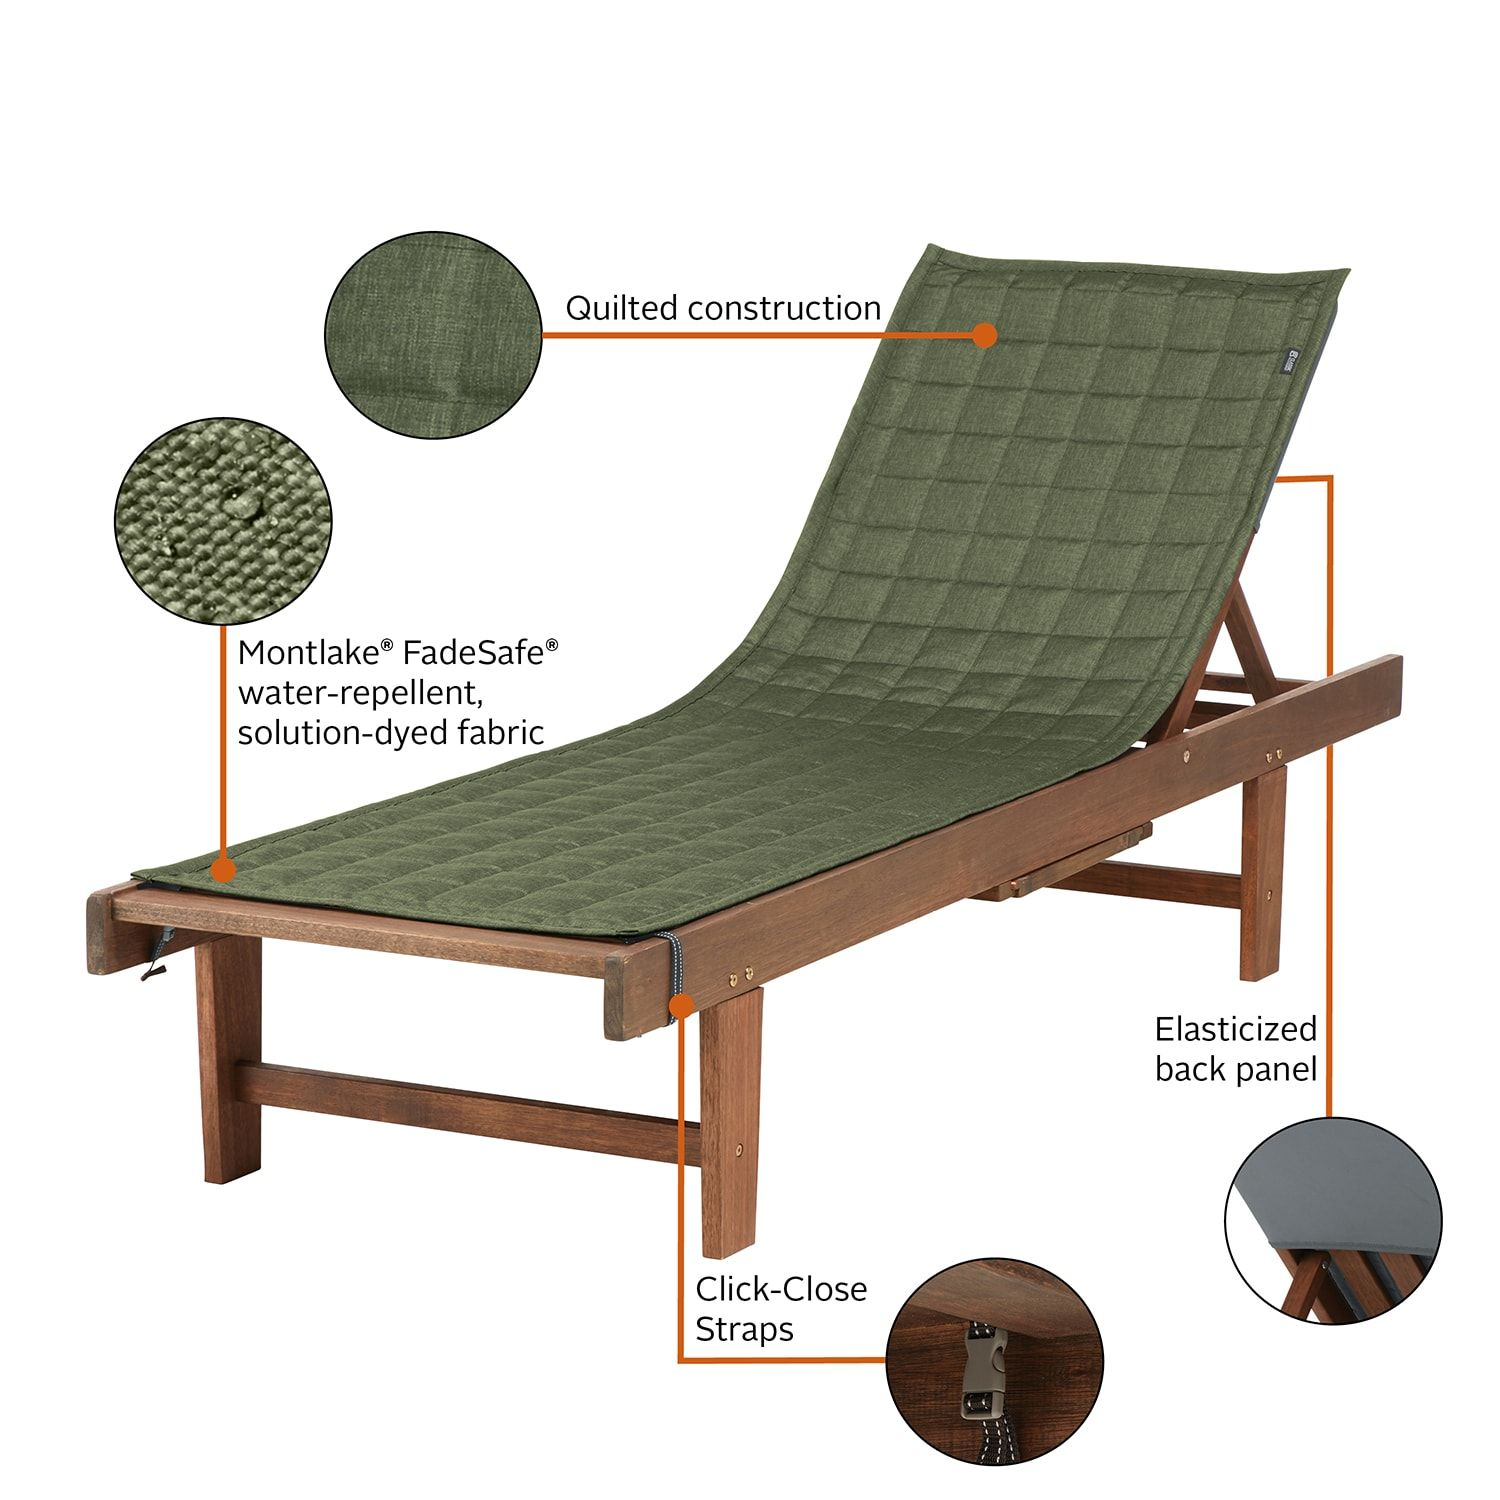 Classic Accessories Montlake Fadesafe Indoor Outdoor Patio Chaise Lounge Slipcover Chaise Lounge Slipcover Slipcovers For Chairs Outdoor Patio Chaise Lounge